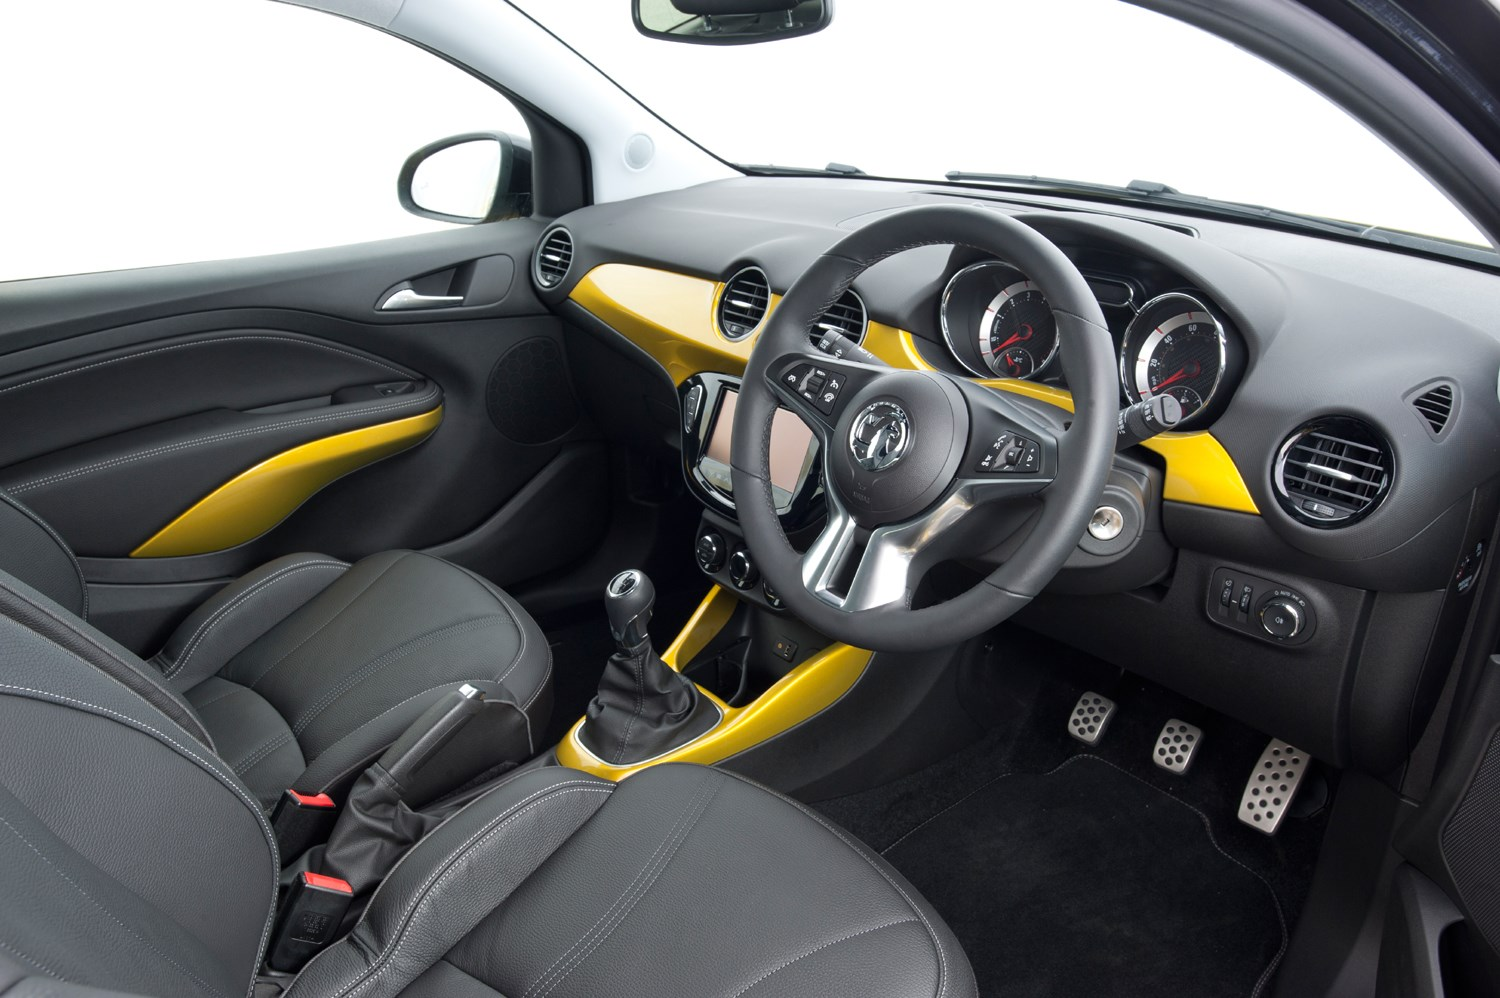 vauxhall adam rocks review 2014 parkers. Black Bedroom Furniture Sets. Home Design Ideas